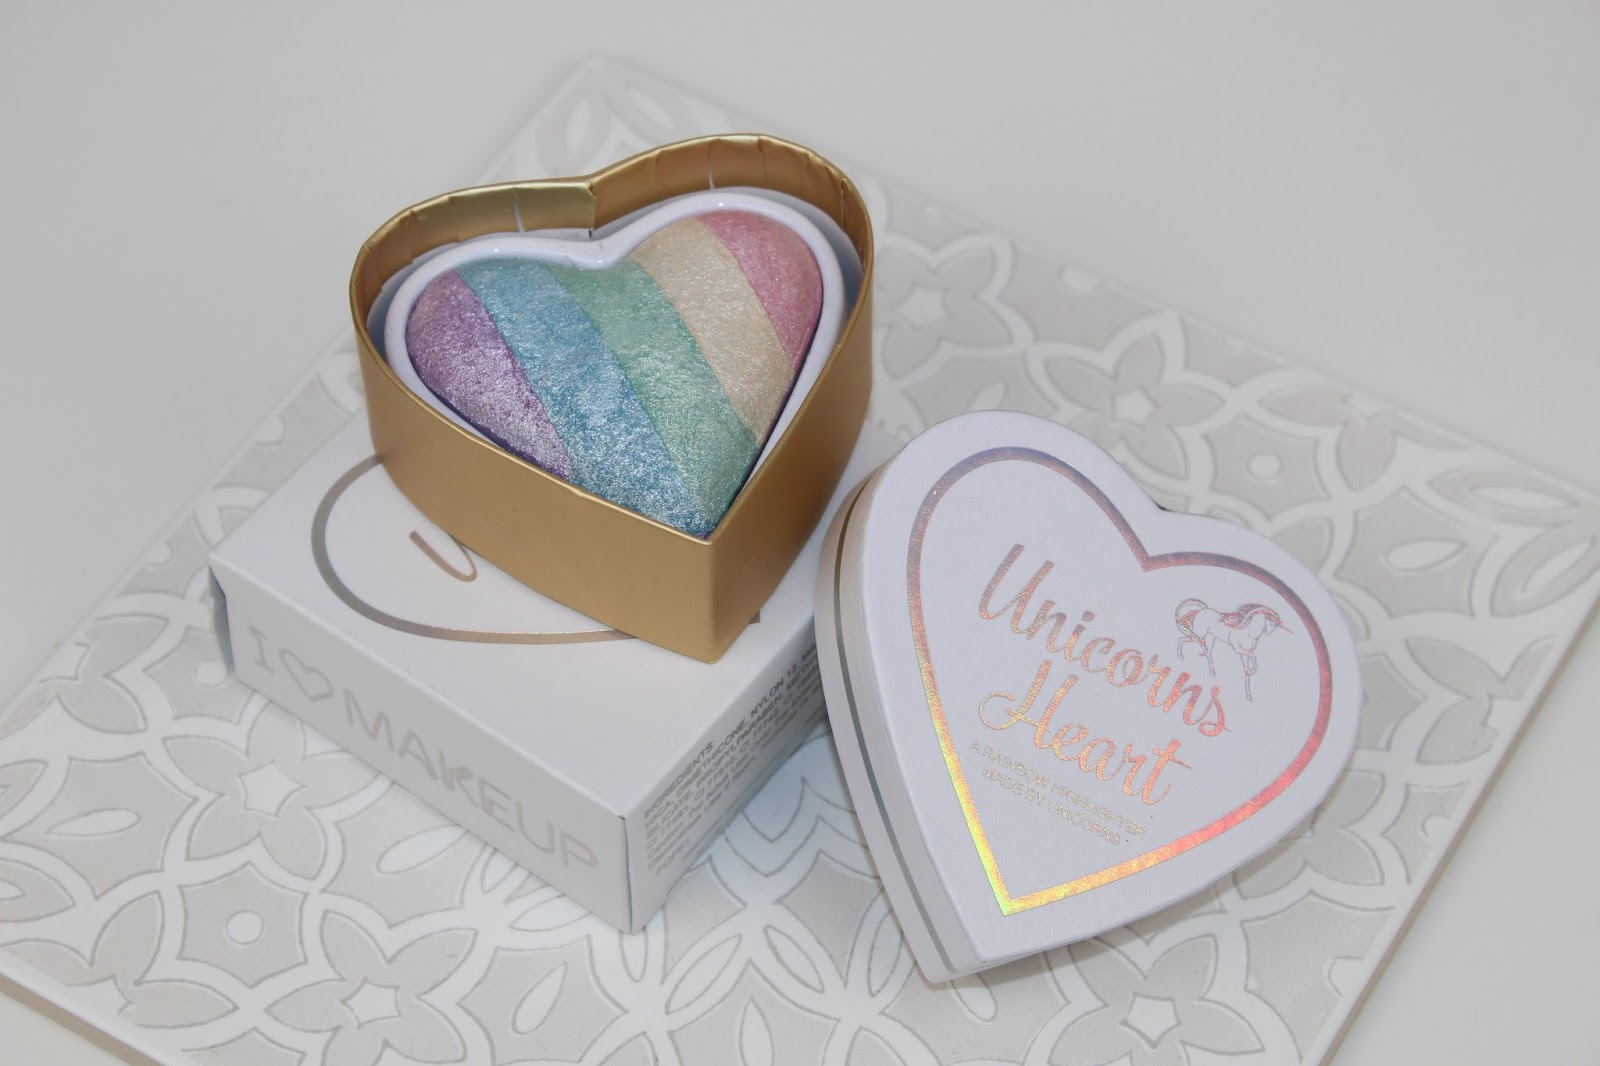 I Heart Makeup Unicorn Heart Highlighter Review and Photo's